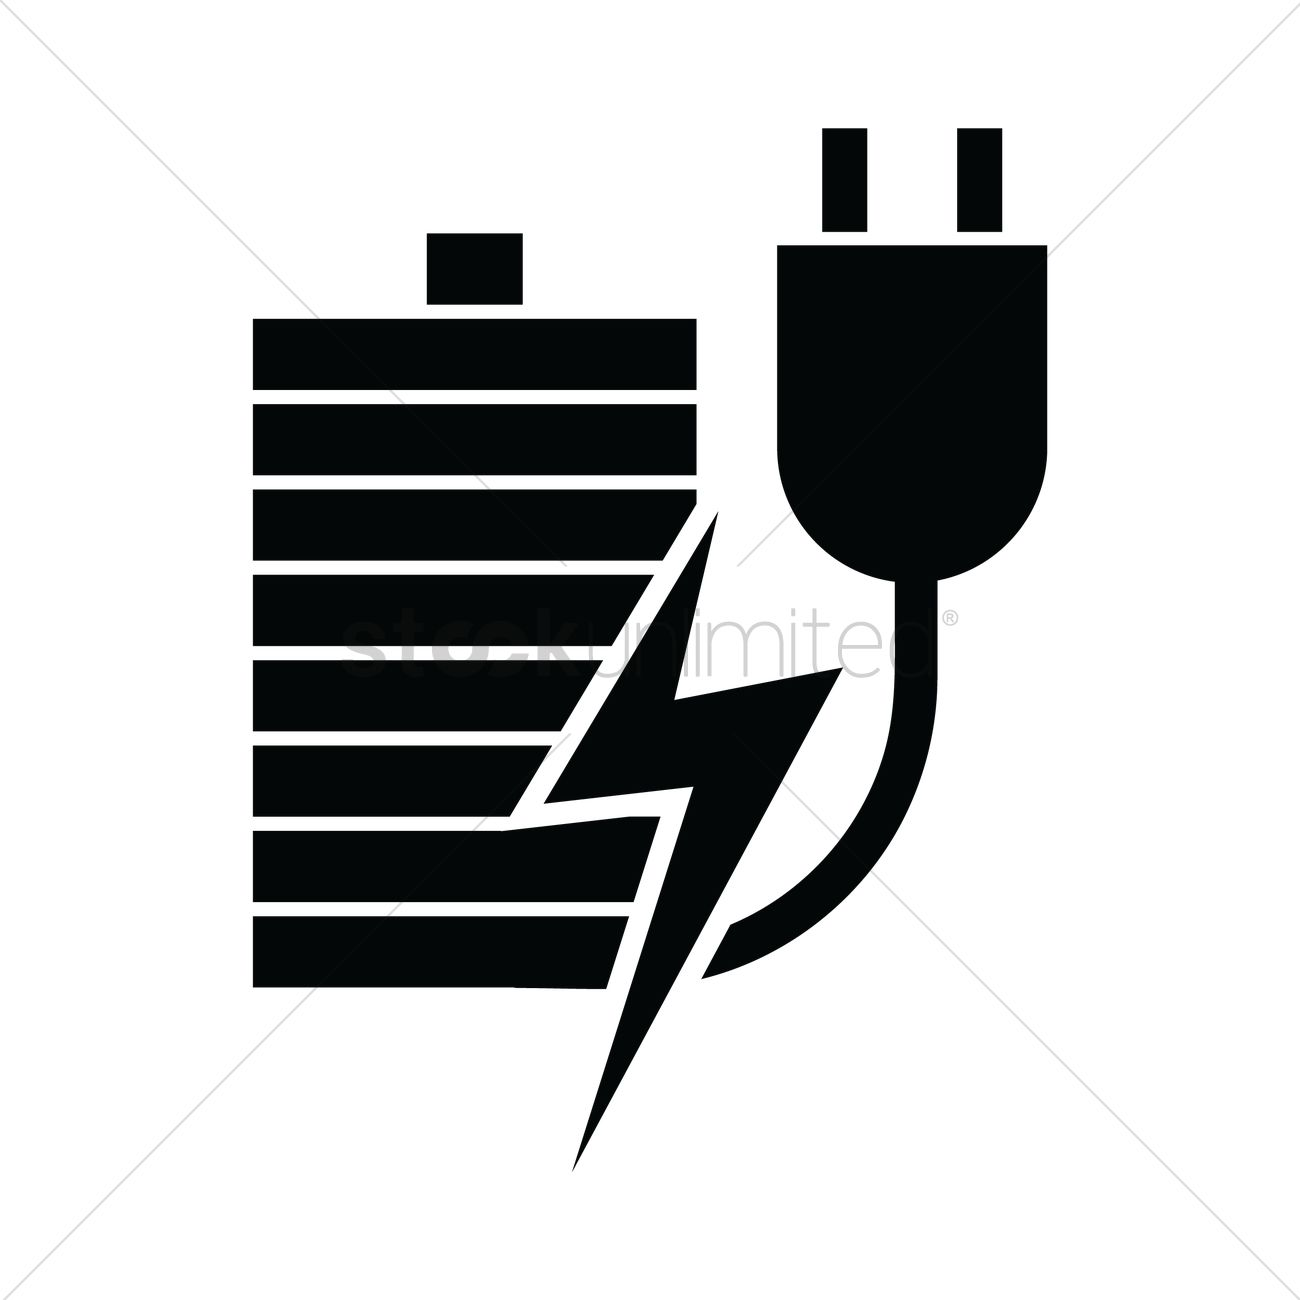 rechargeable battery vector image 2034367 stockunlimited rechargeable battery vector image